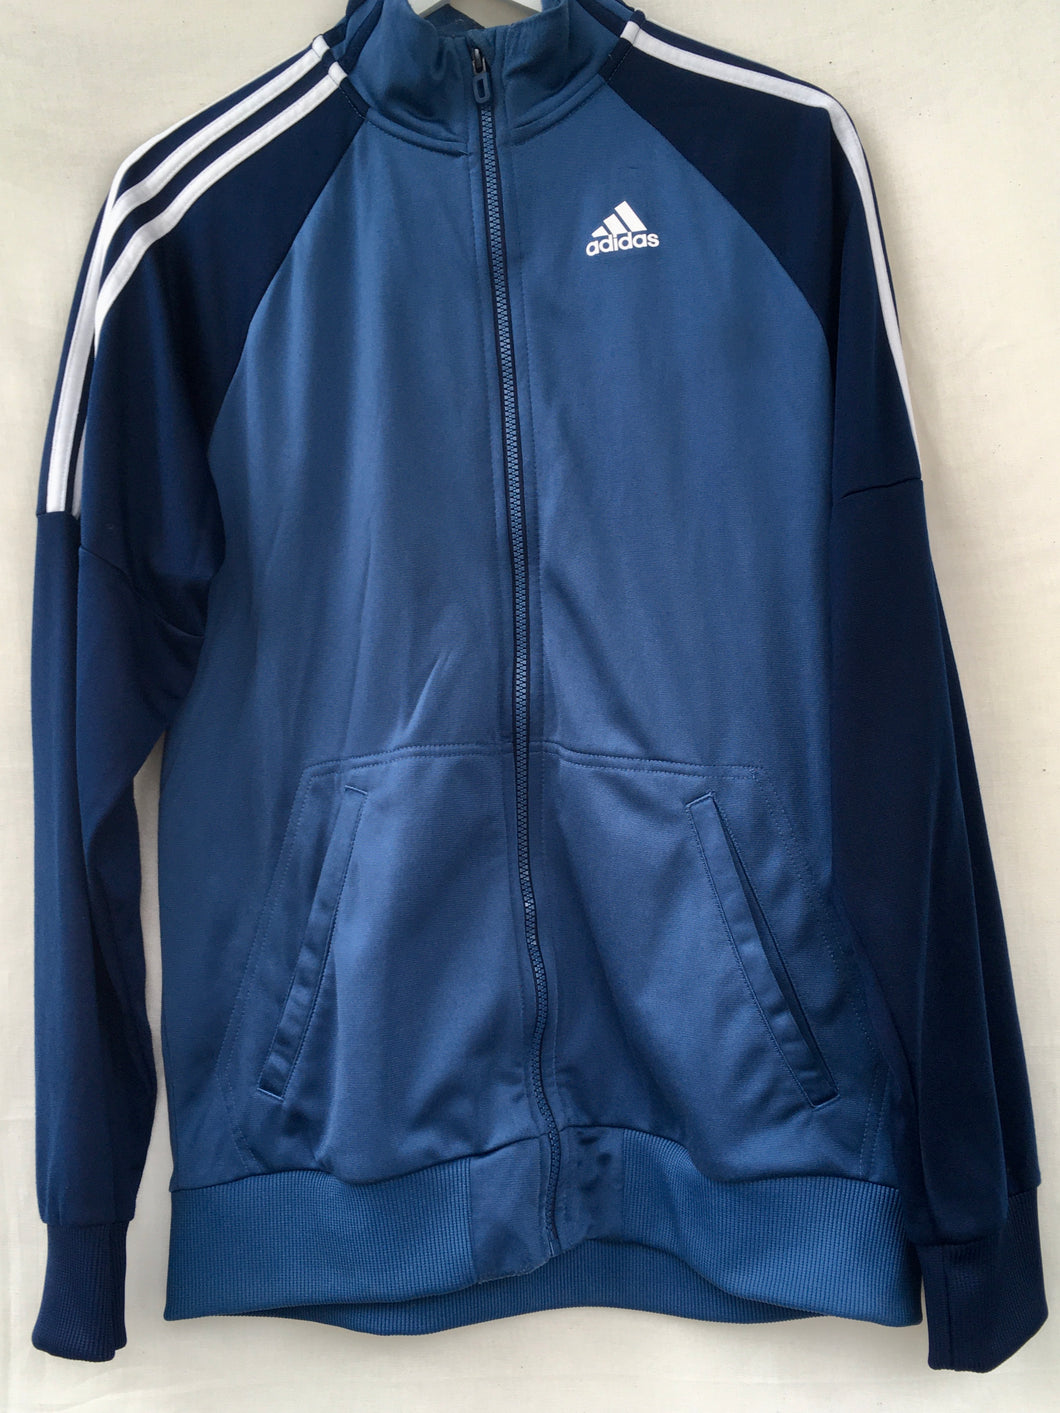 Blue/white Adidas track jacket